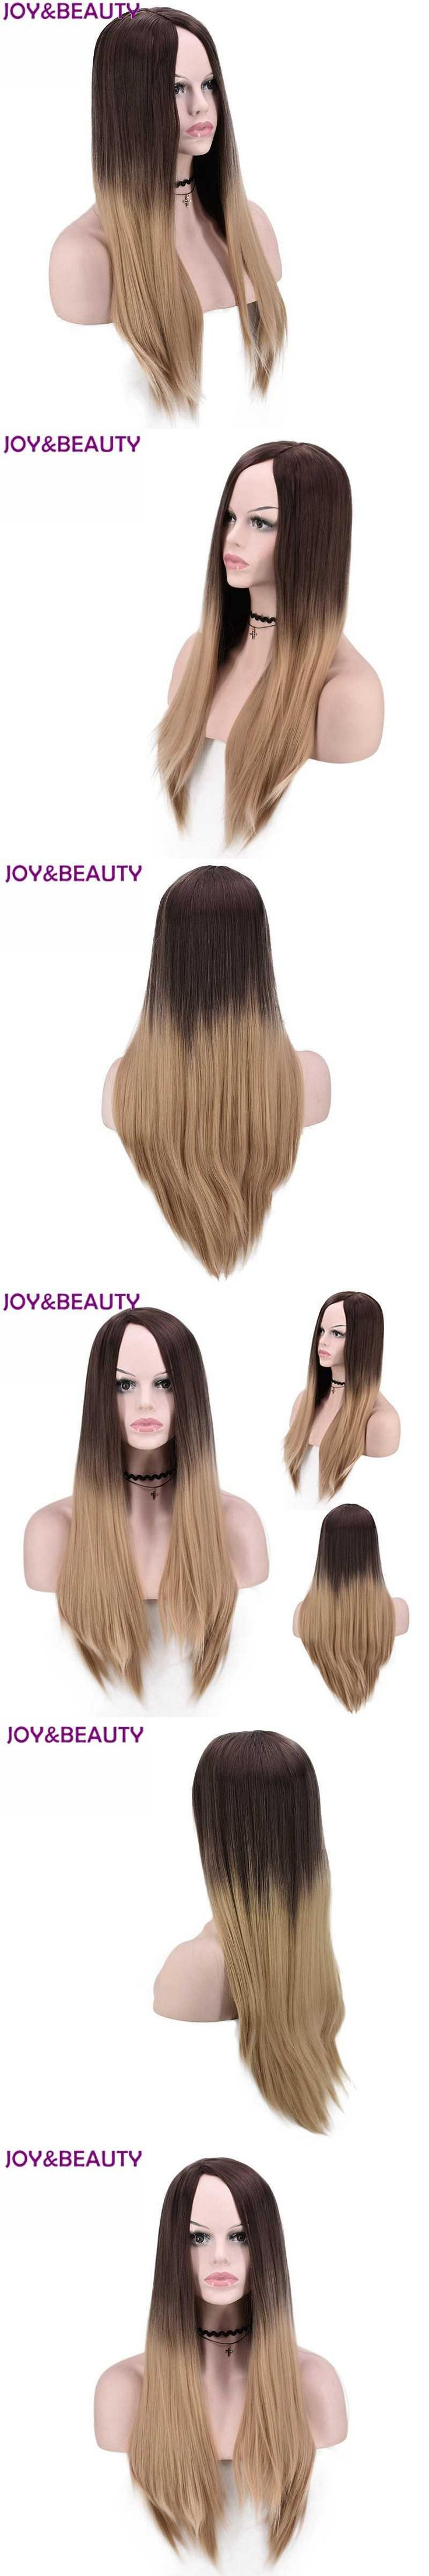 "JOY&BEAUTY Light Brown Ombre Long Straight Wig Brown Root High Temperature Fiber 24"" Long Black White Women Wigs"